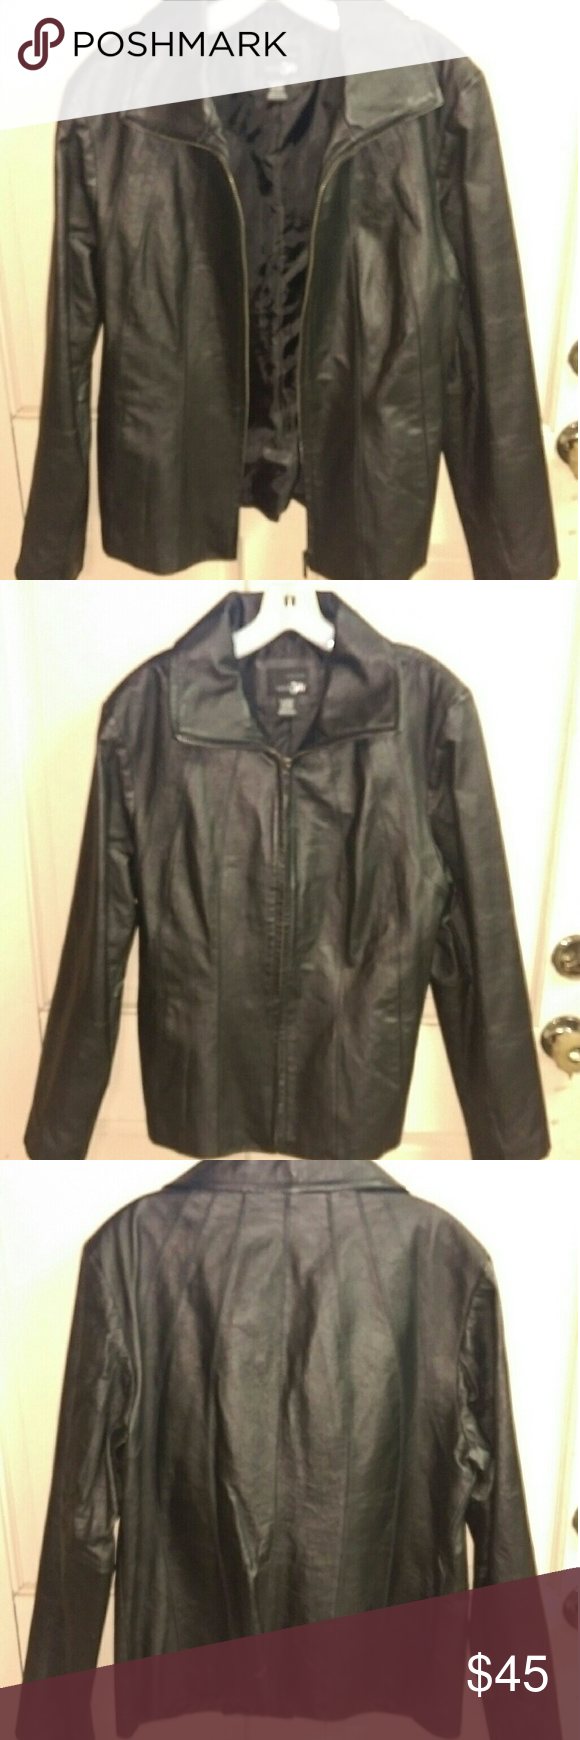 East 5th leather jacket NWOT This is a brand new without